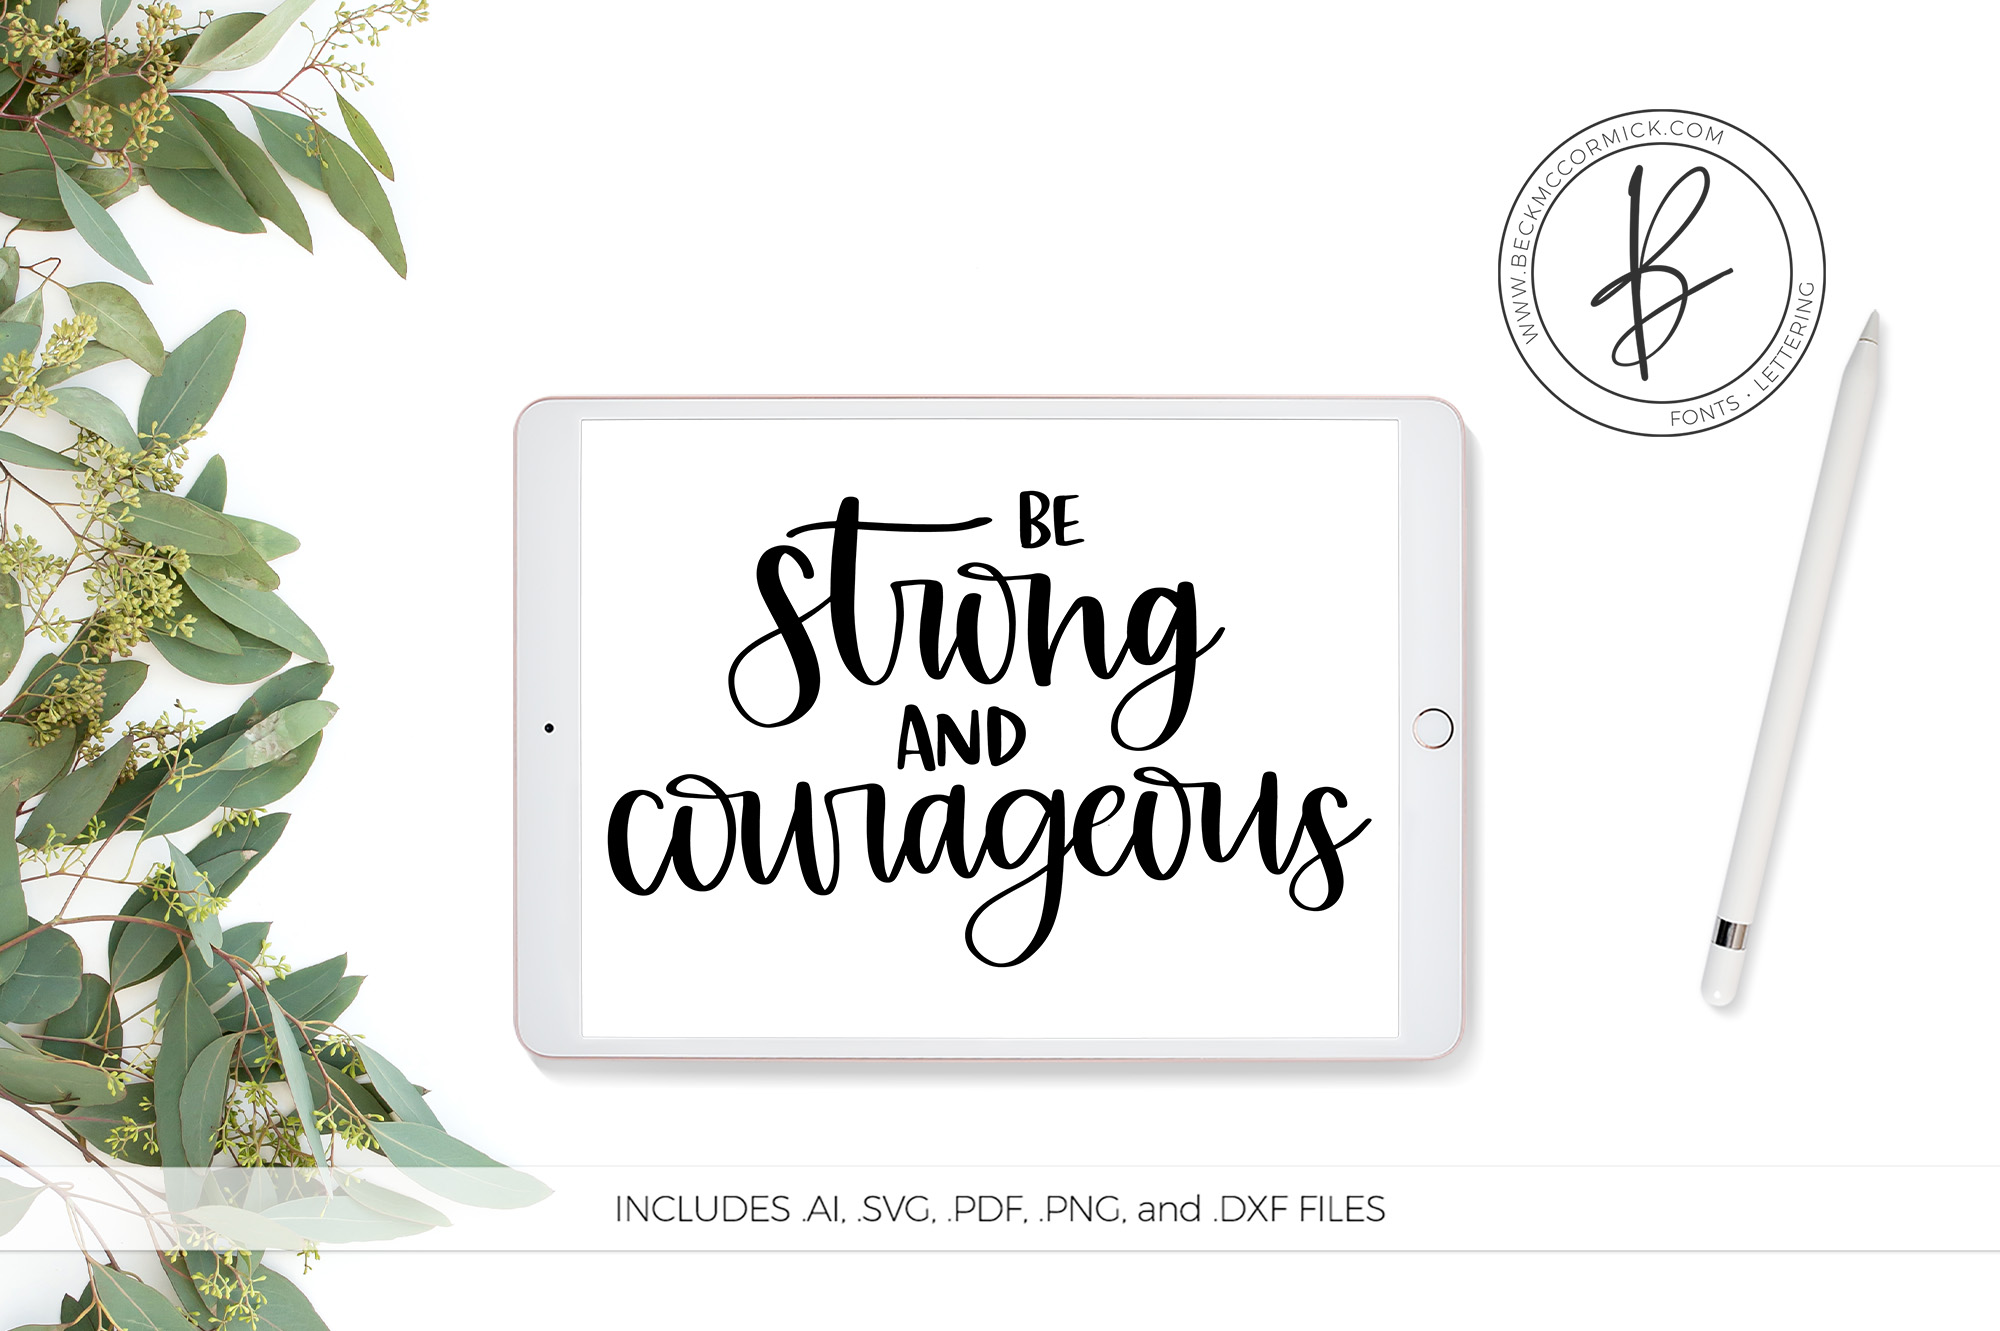 Download Free Be Strong And Courageous Graphic By Beckmccormick Creative Fabrica for Cricut Explore, Silhouette and other cutting machines.